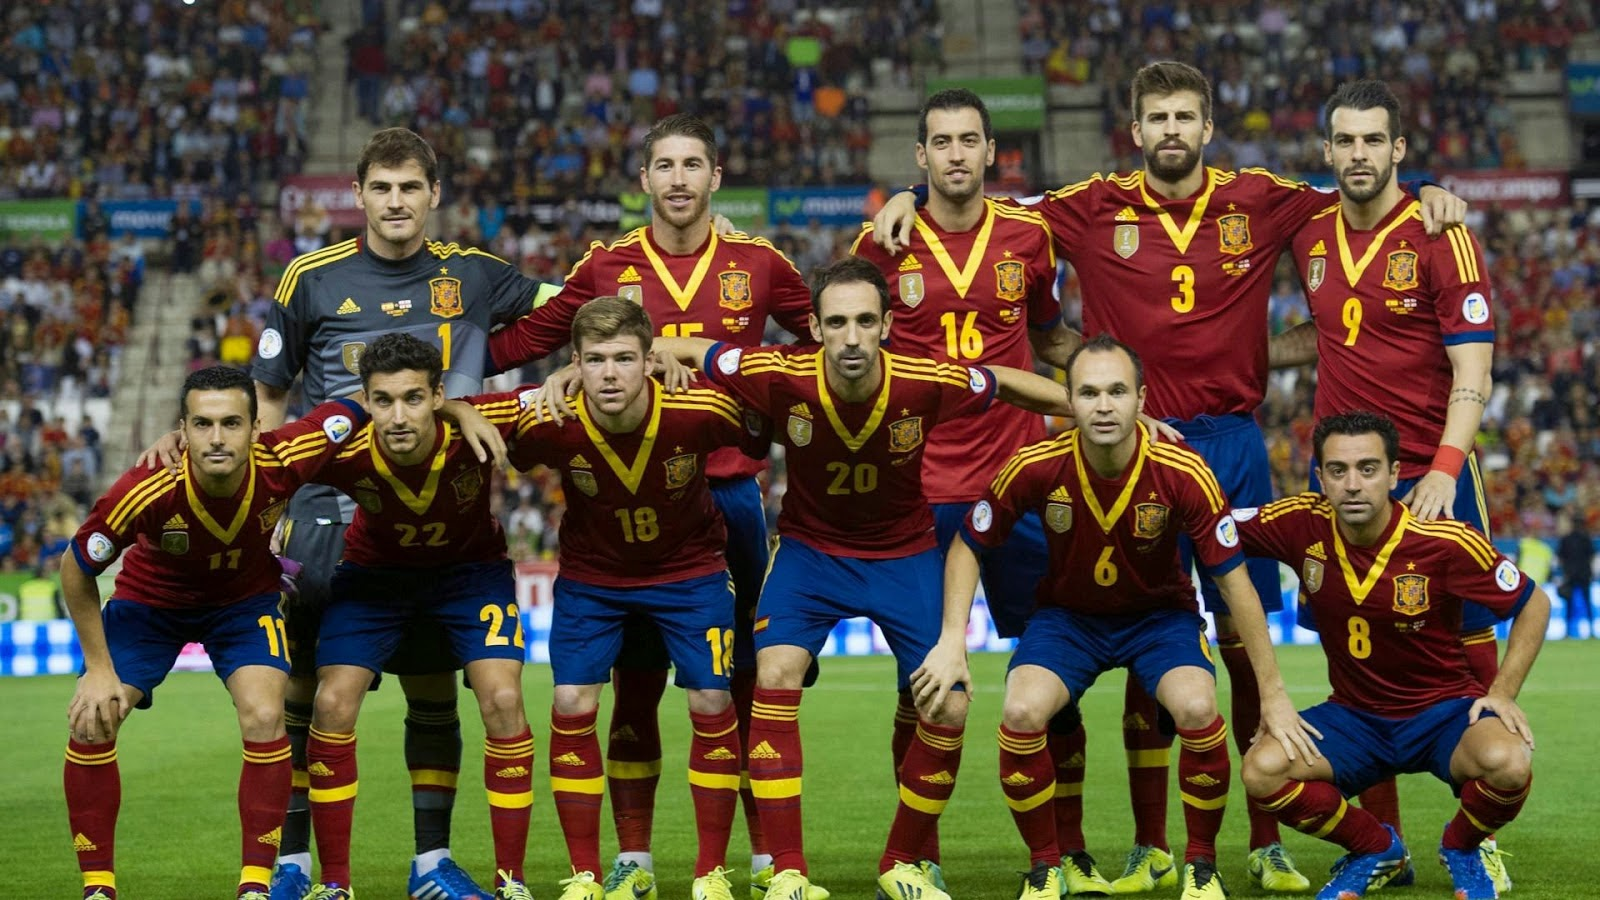 Australia vs Spain HD Wallpapers with live Streaming